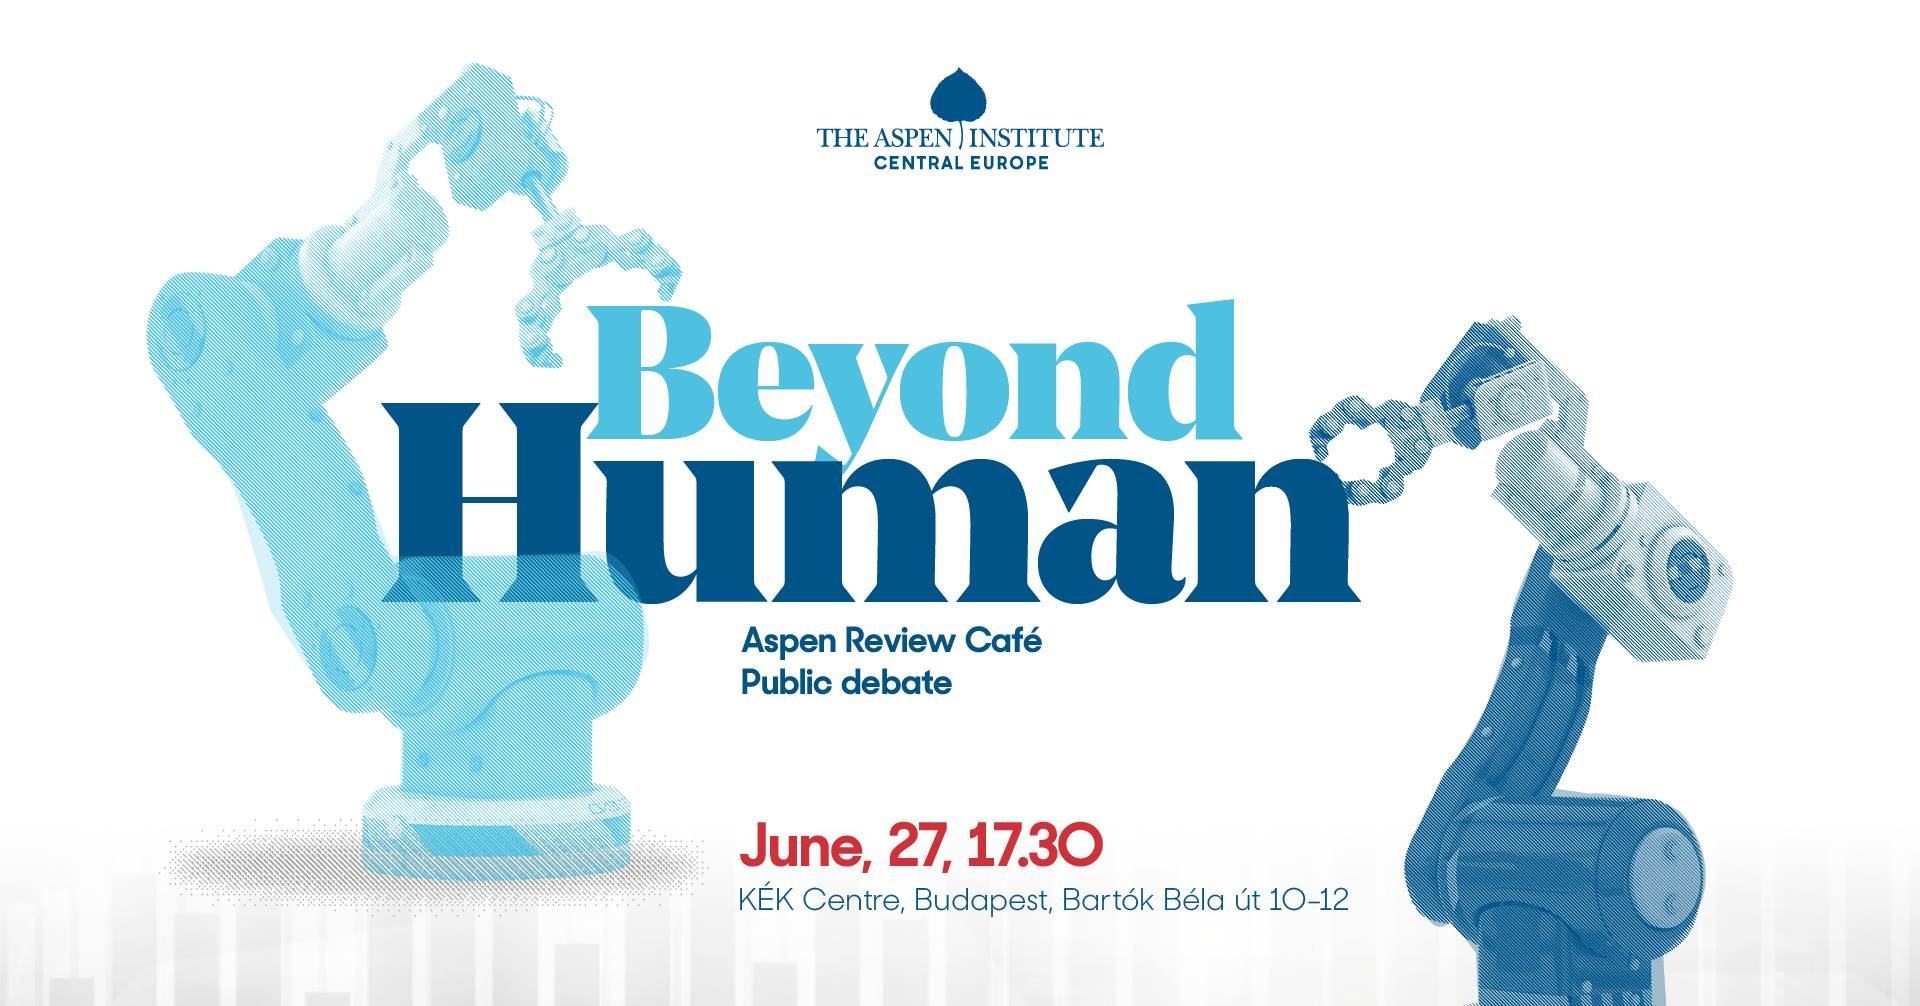 Invitation: 'Aspen Review Café – Beyond Human', Contemporary Architecture Center, 27 June